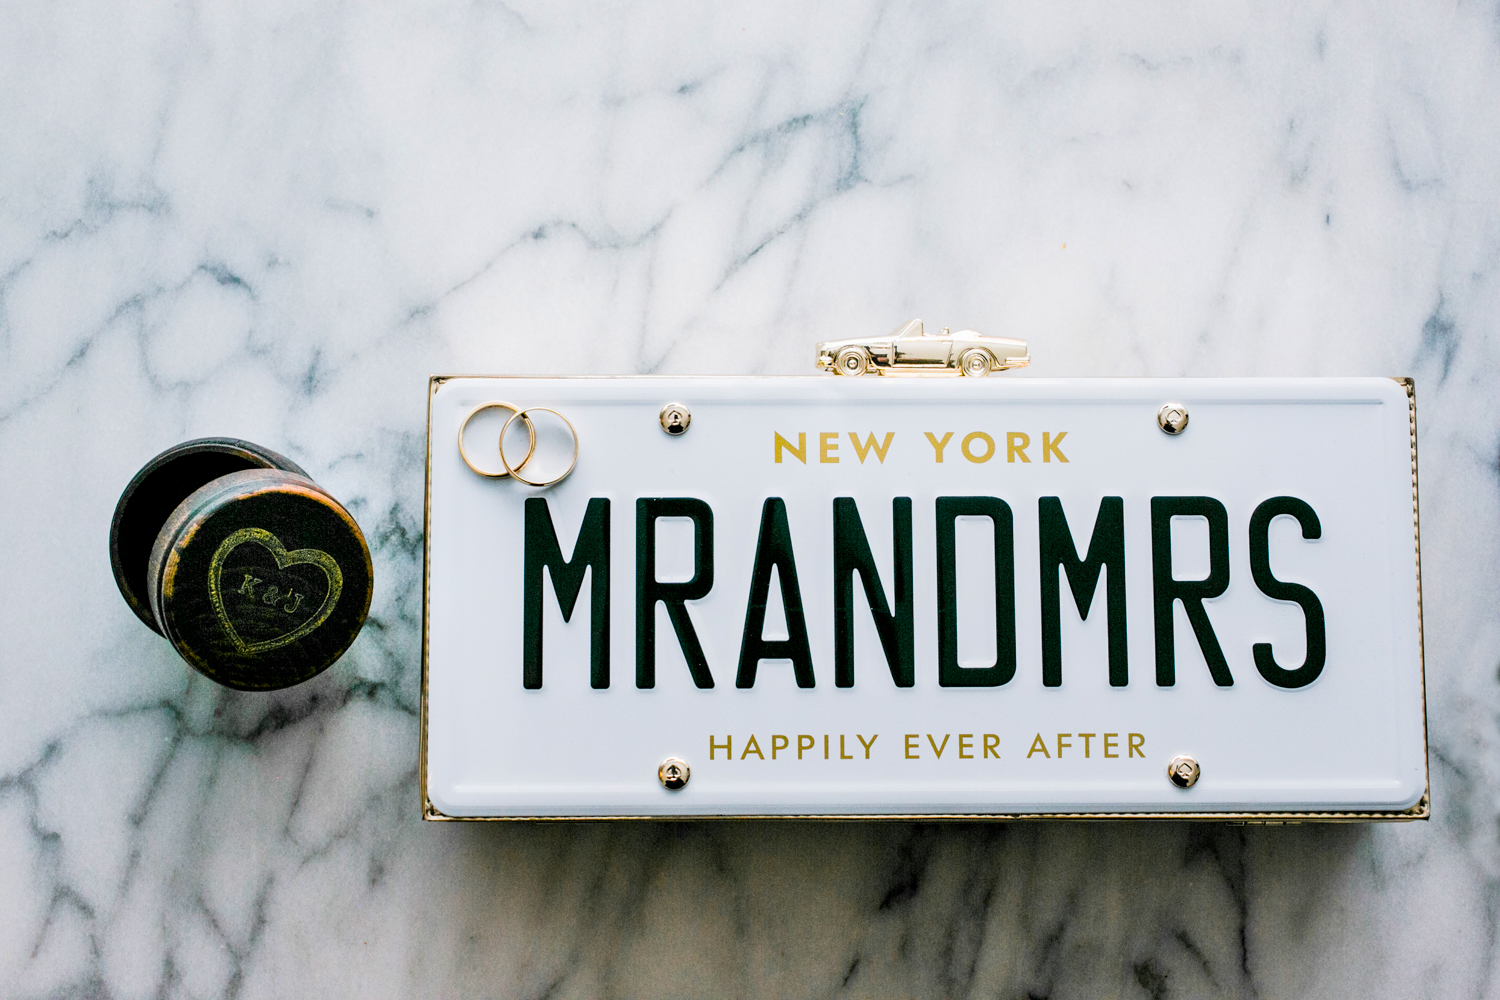 Mr and Mrs License Plate Purse